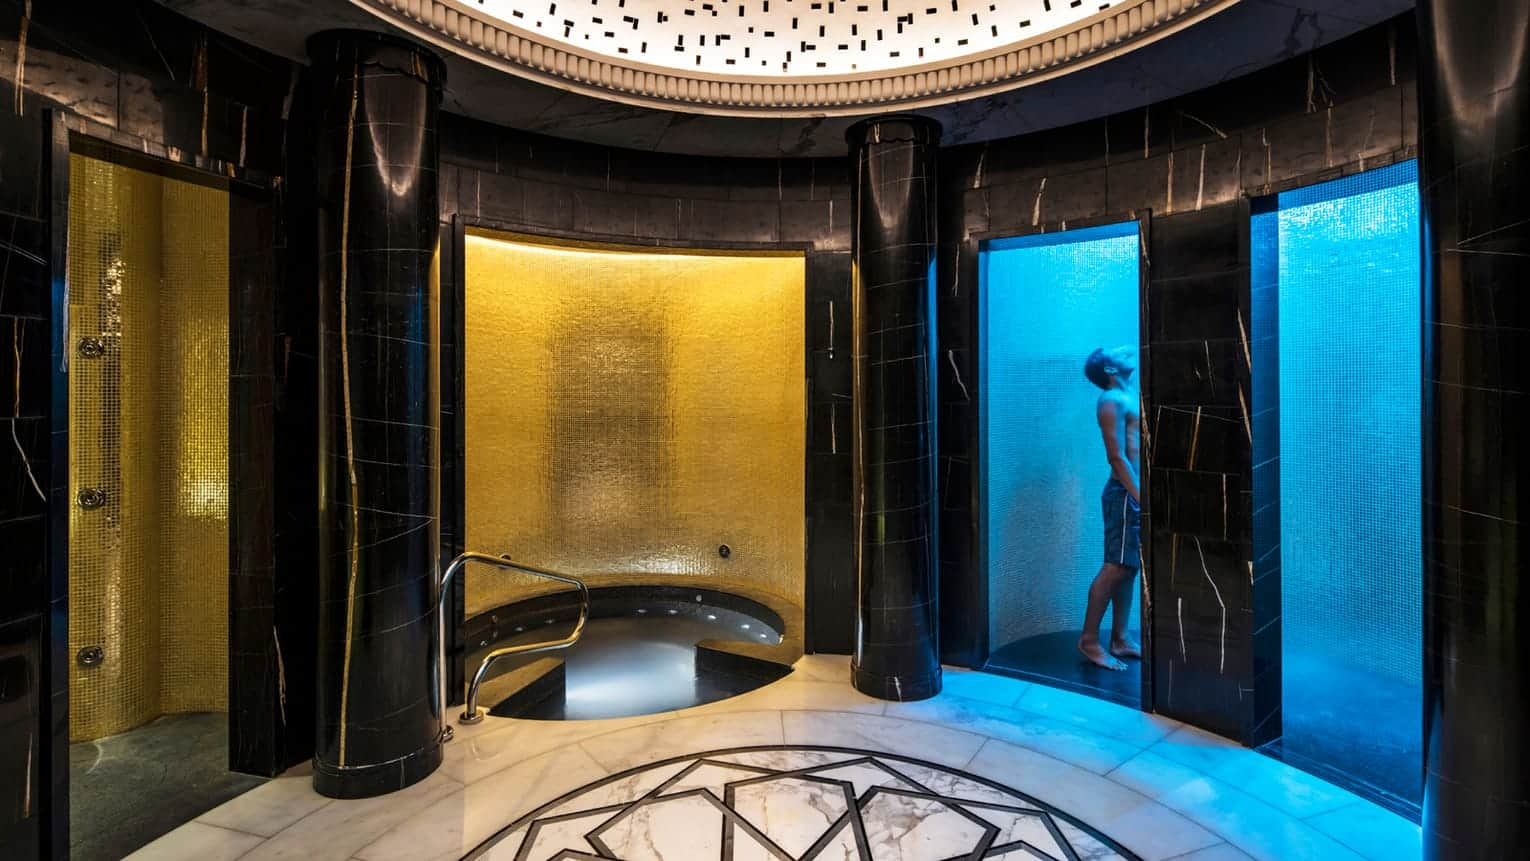 Pearl Spa experience showers